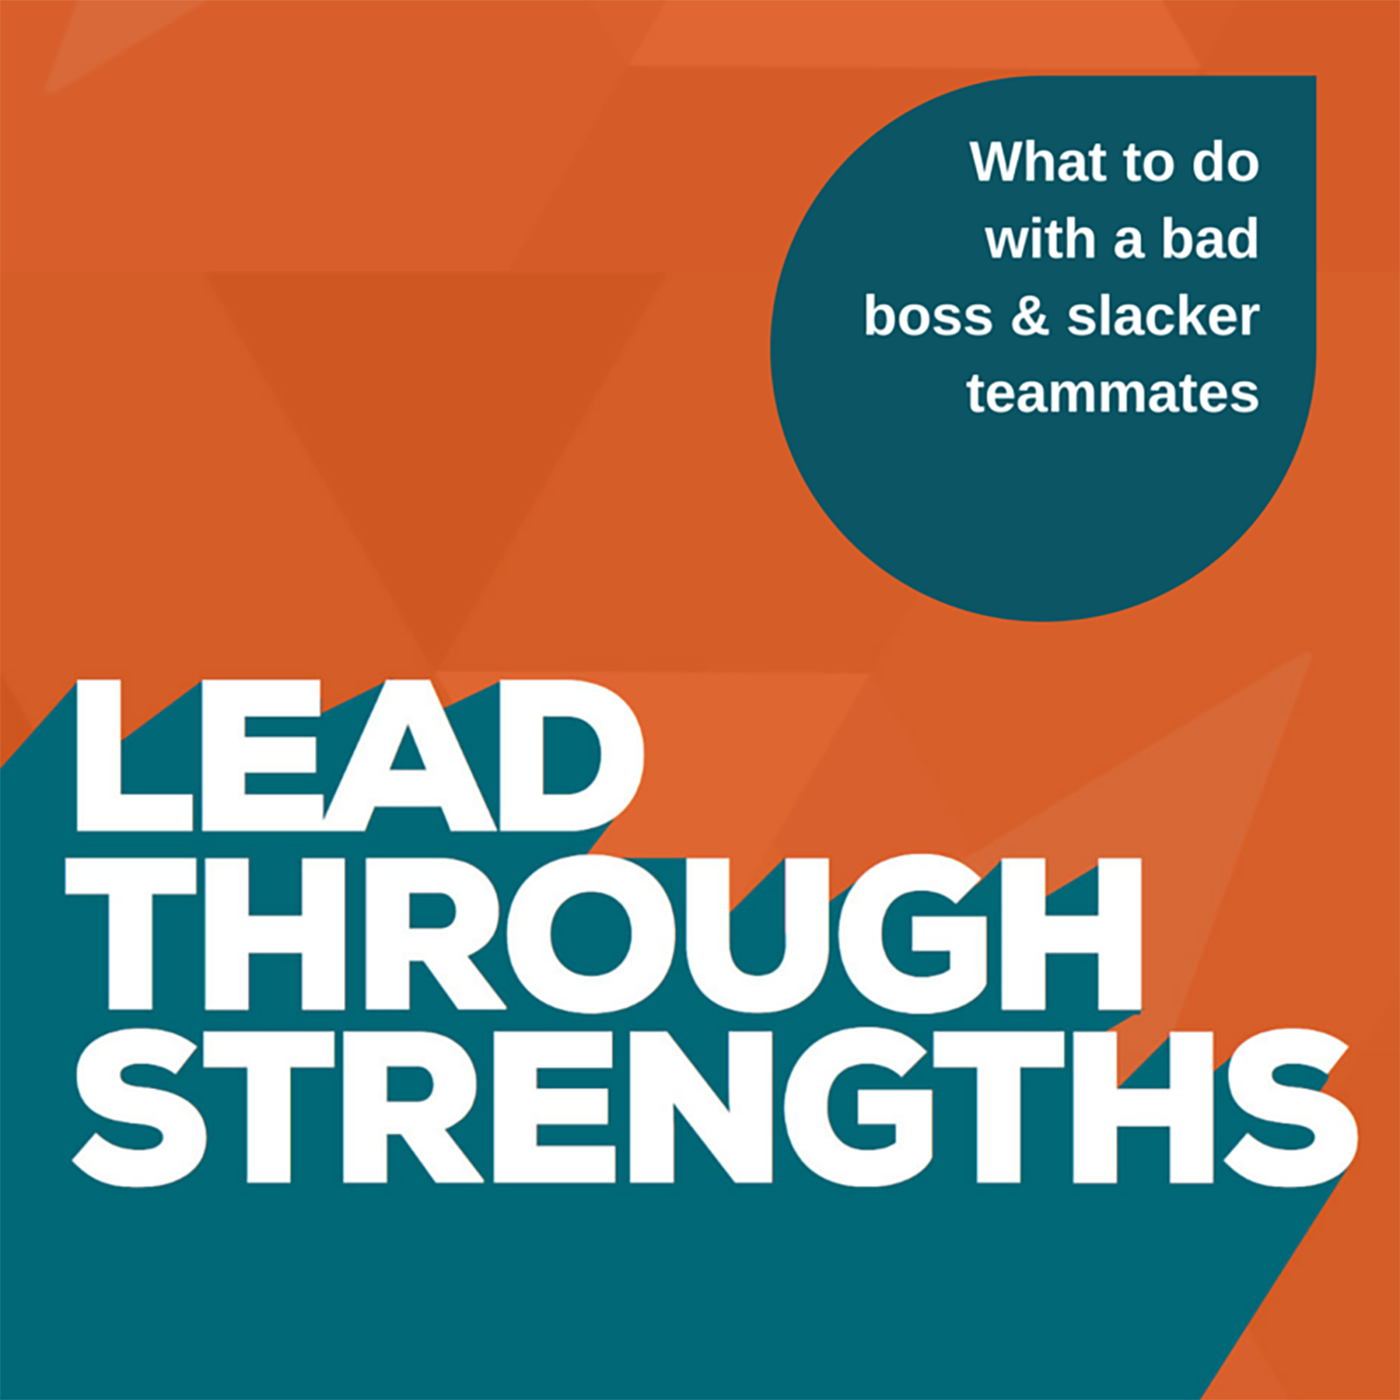 Career Q&A: Bad Boss & Slacker Teammates - What to Do?